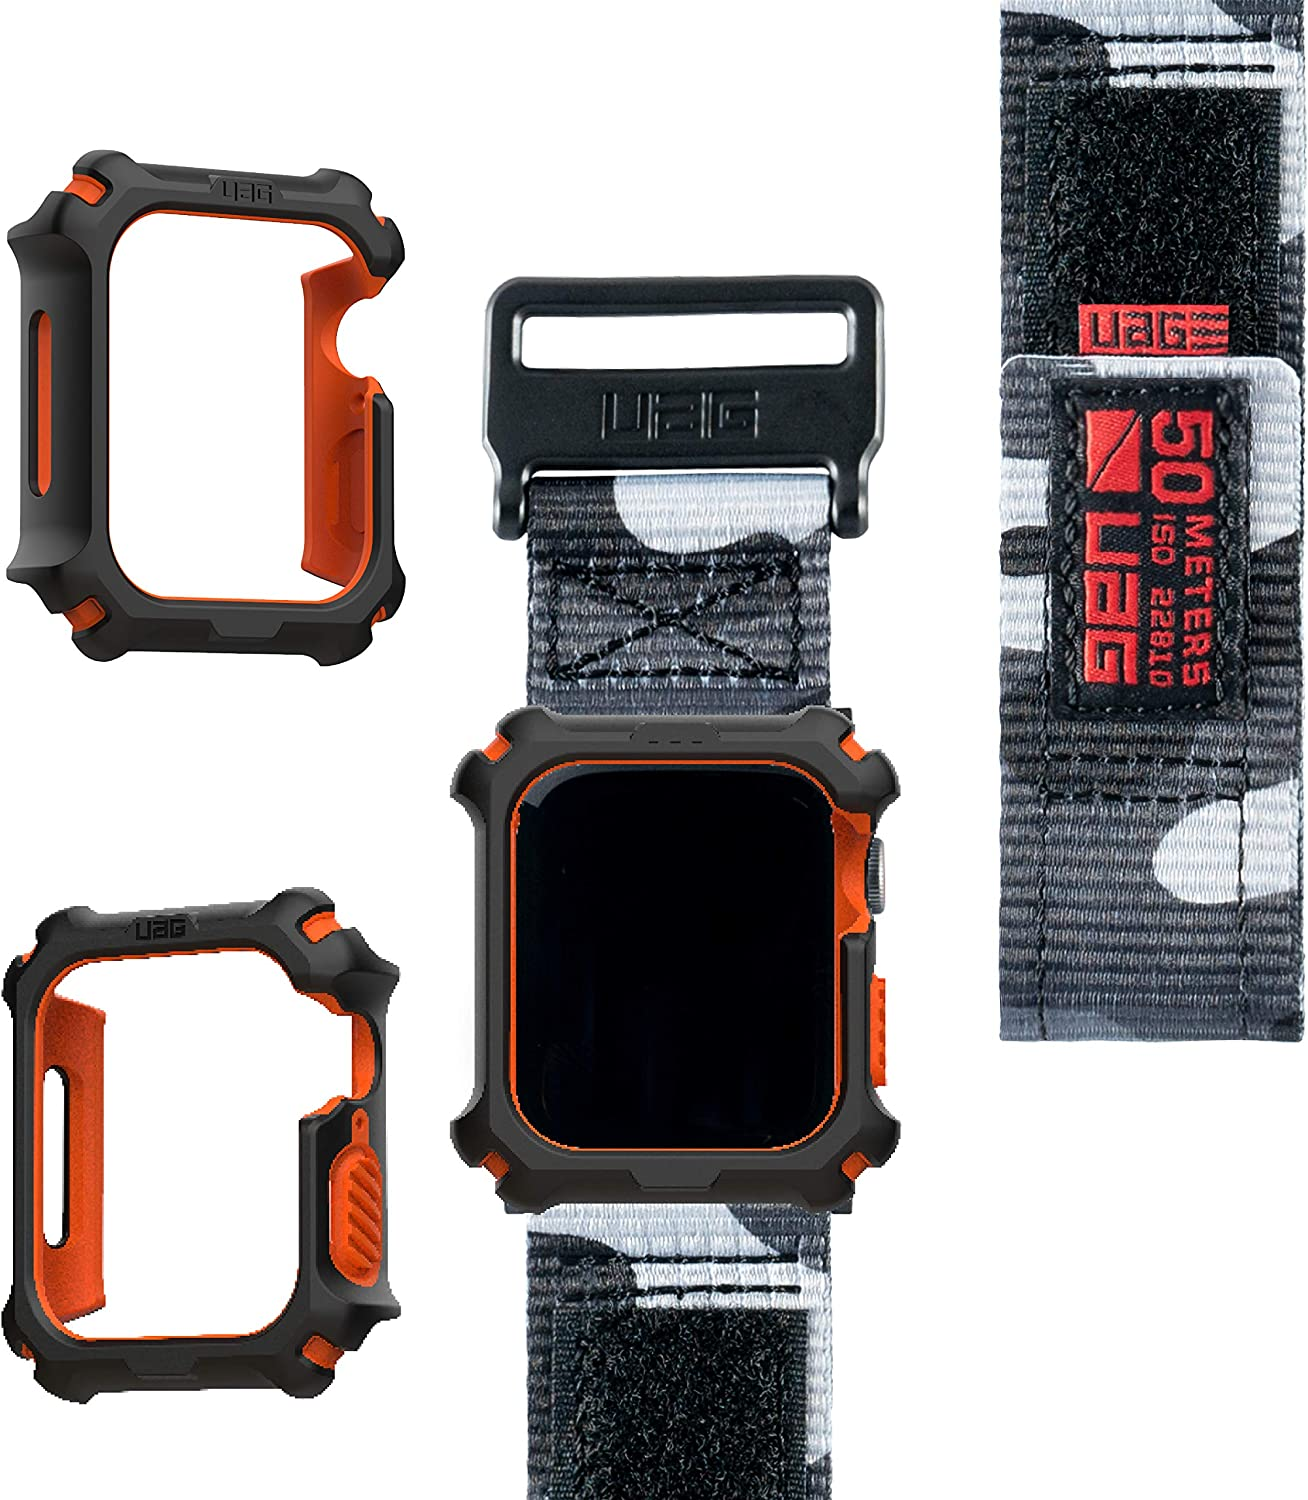 UAG Apple Watch Band 44mm 42mm, iWatch Series 6/5/4/Watch SE Replacement Strap, Active Midnight Camo + Apple Watch Case 44mm, iWatch Series 6/5/4/Watch SE Protective Bumper Case, Black/Orange